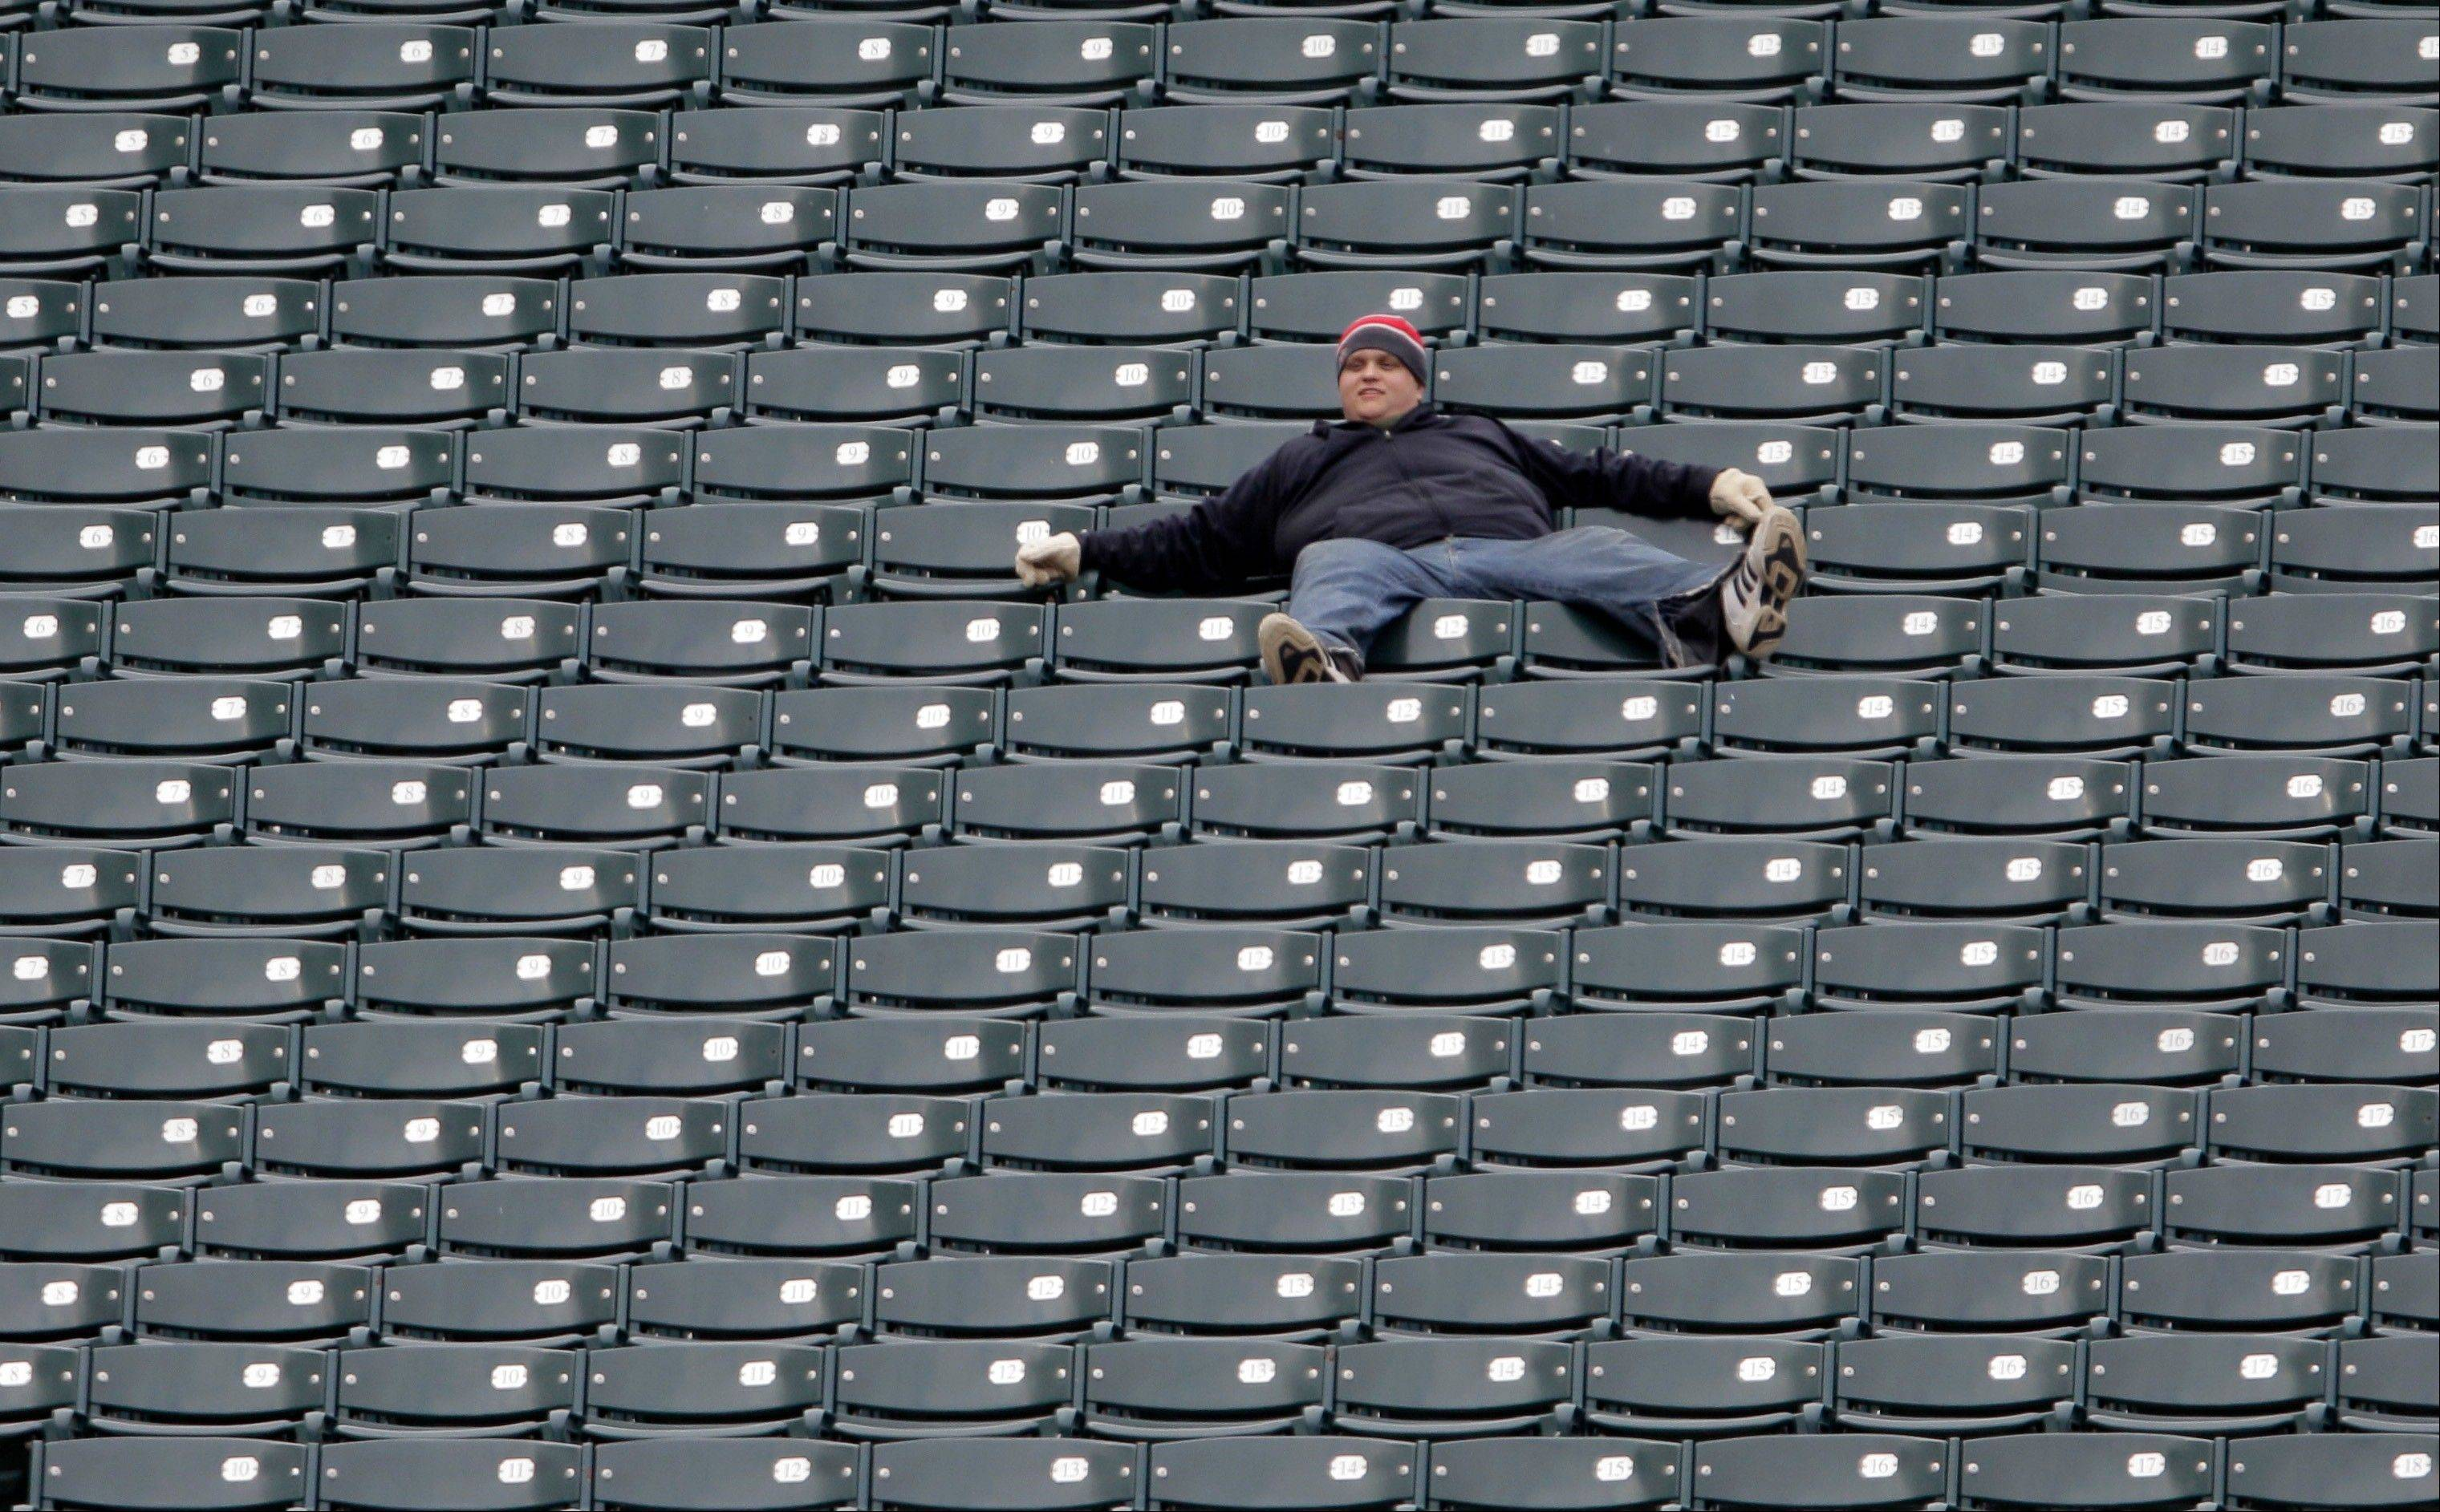 A Cleveland Indians fan watches alone from the left field stands in the ninth inning of the Indians 10-6 loss to the Chicago White Sox in a baseball game in Cleveland on Wednesday, April 11, 2012.